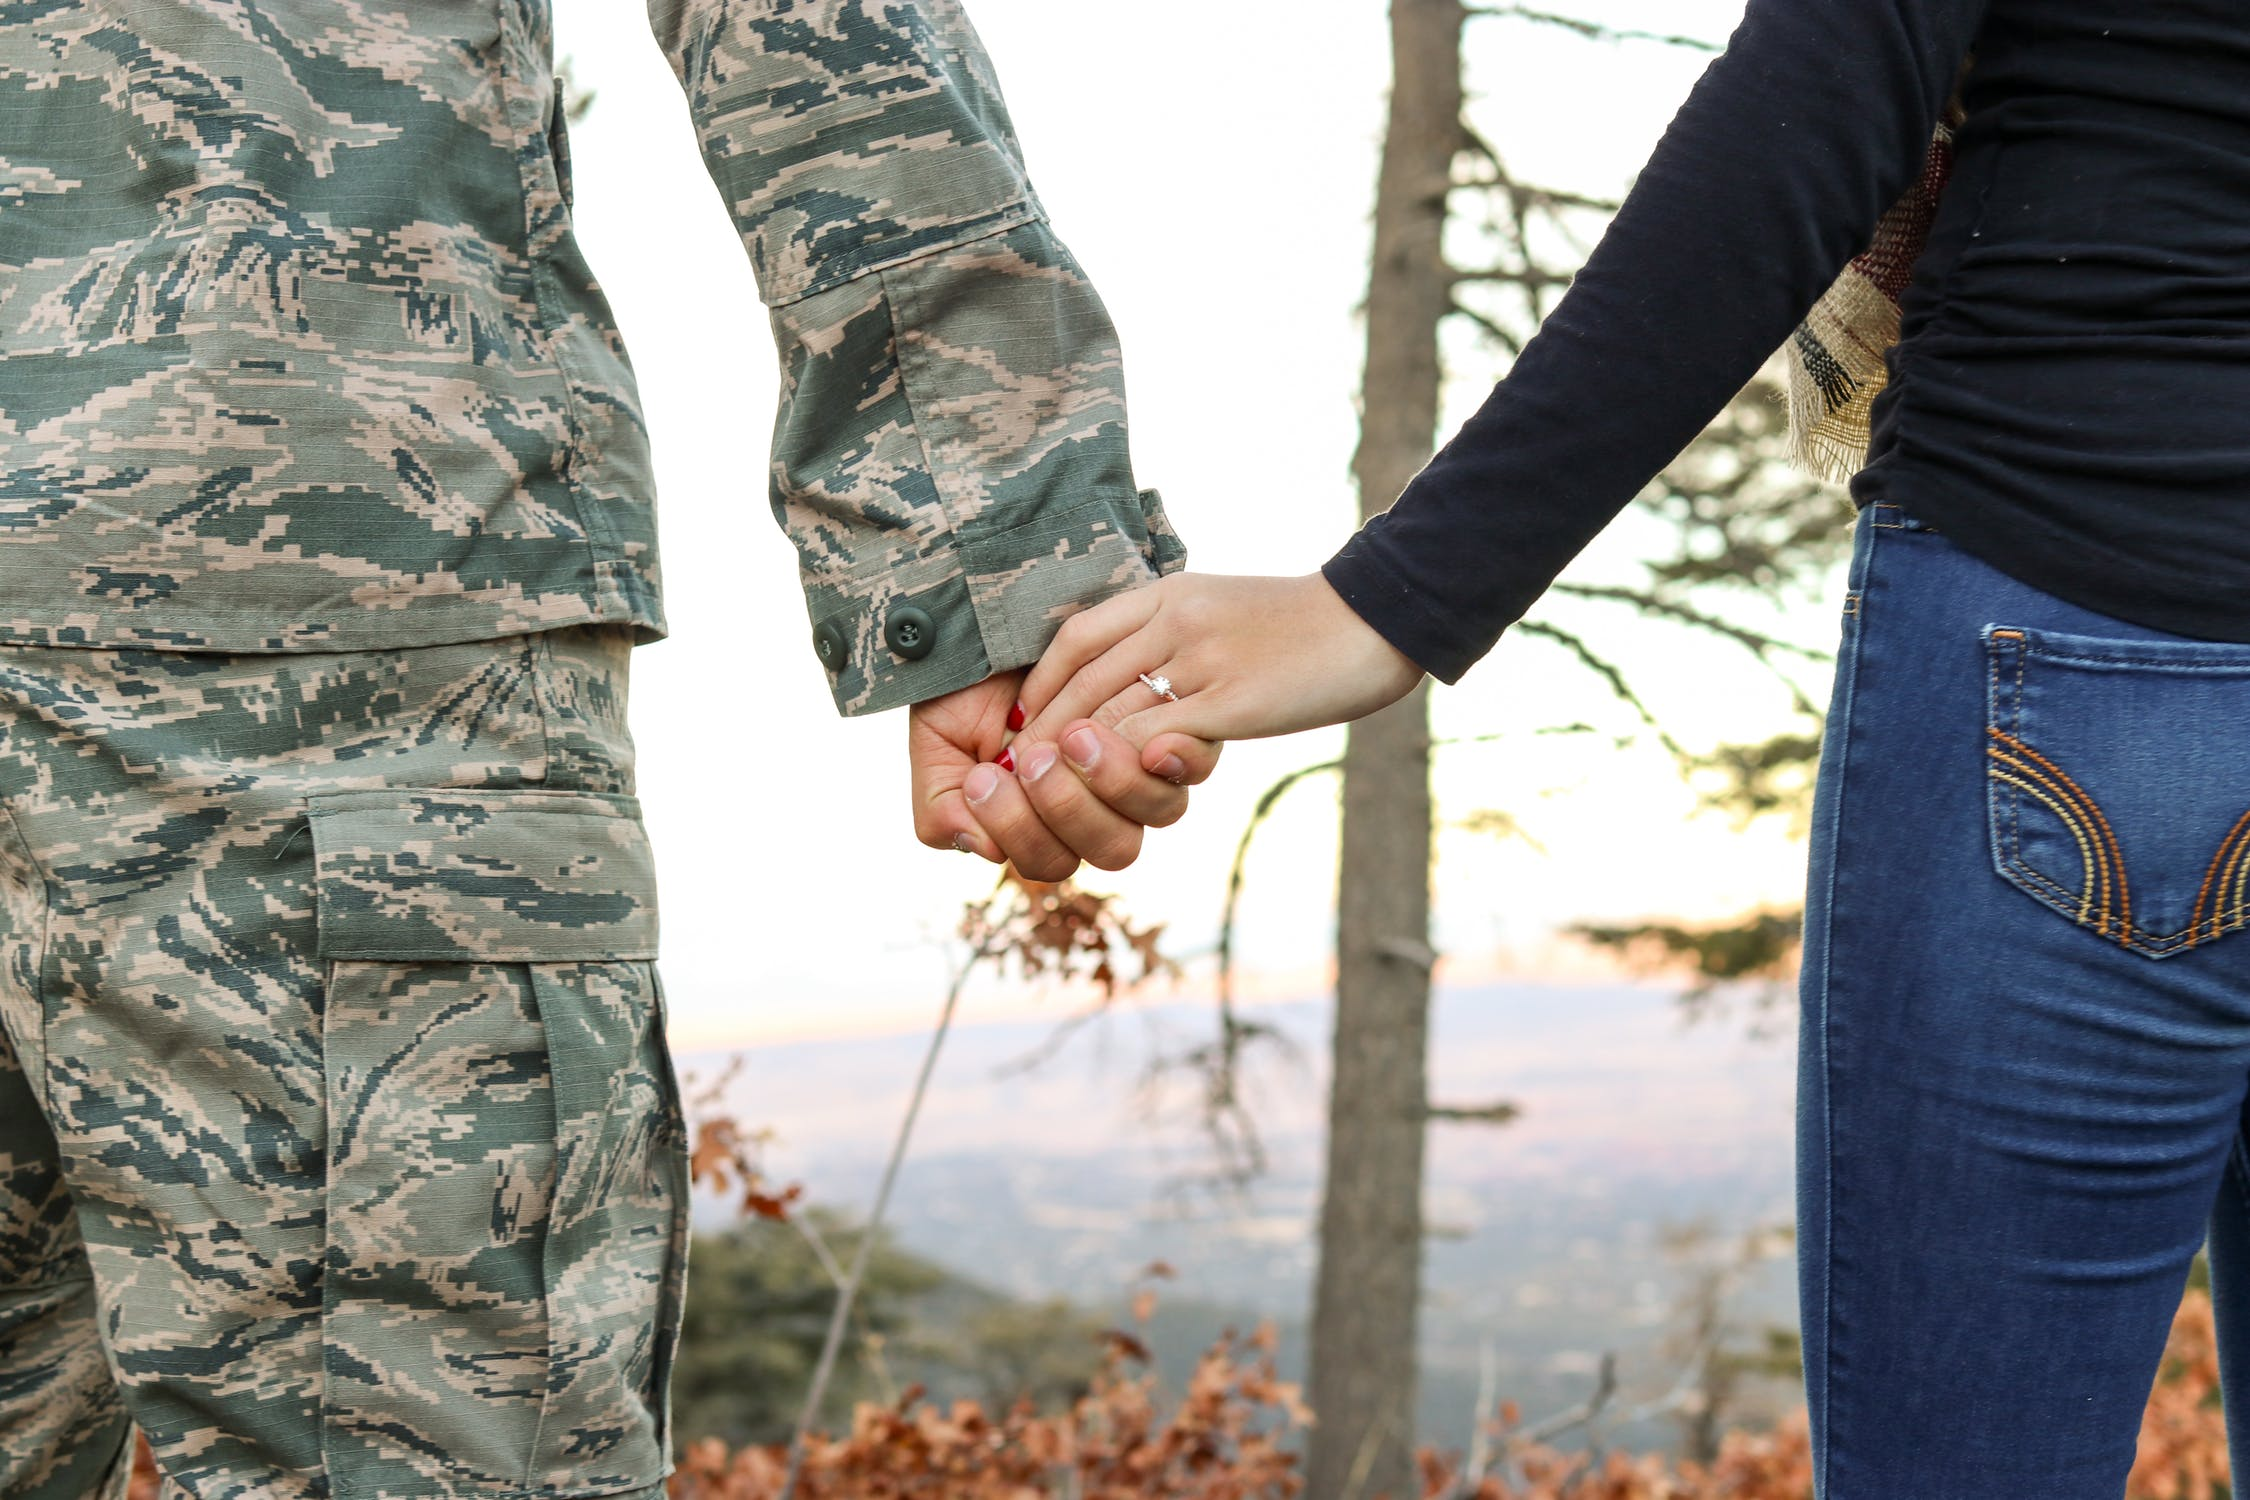 Strong Relationships May Reduce Risk of Military Suicides